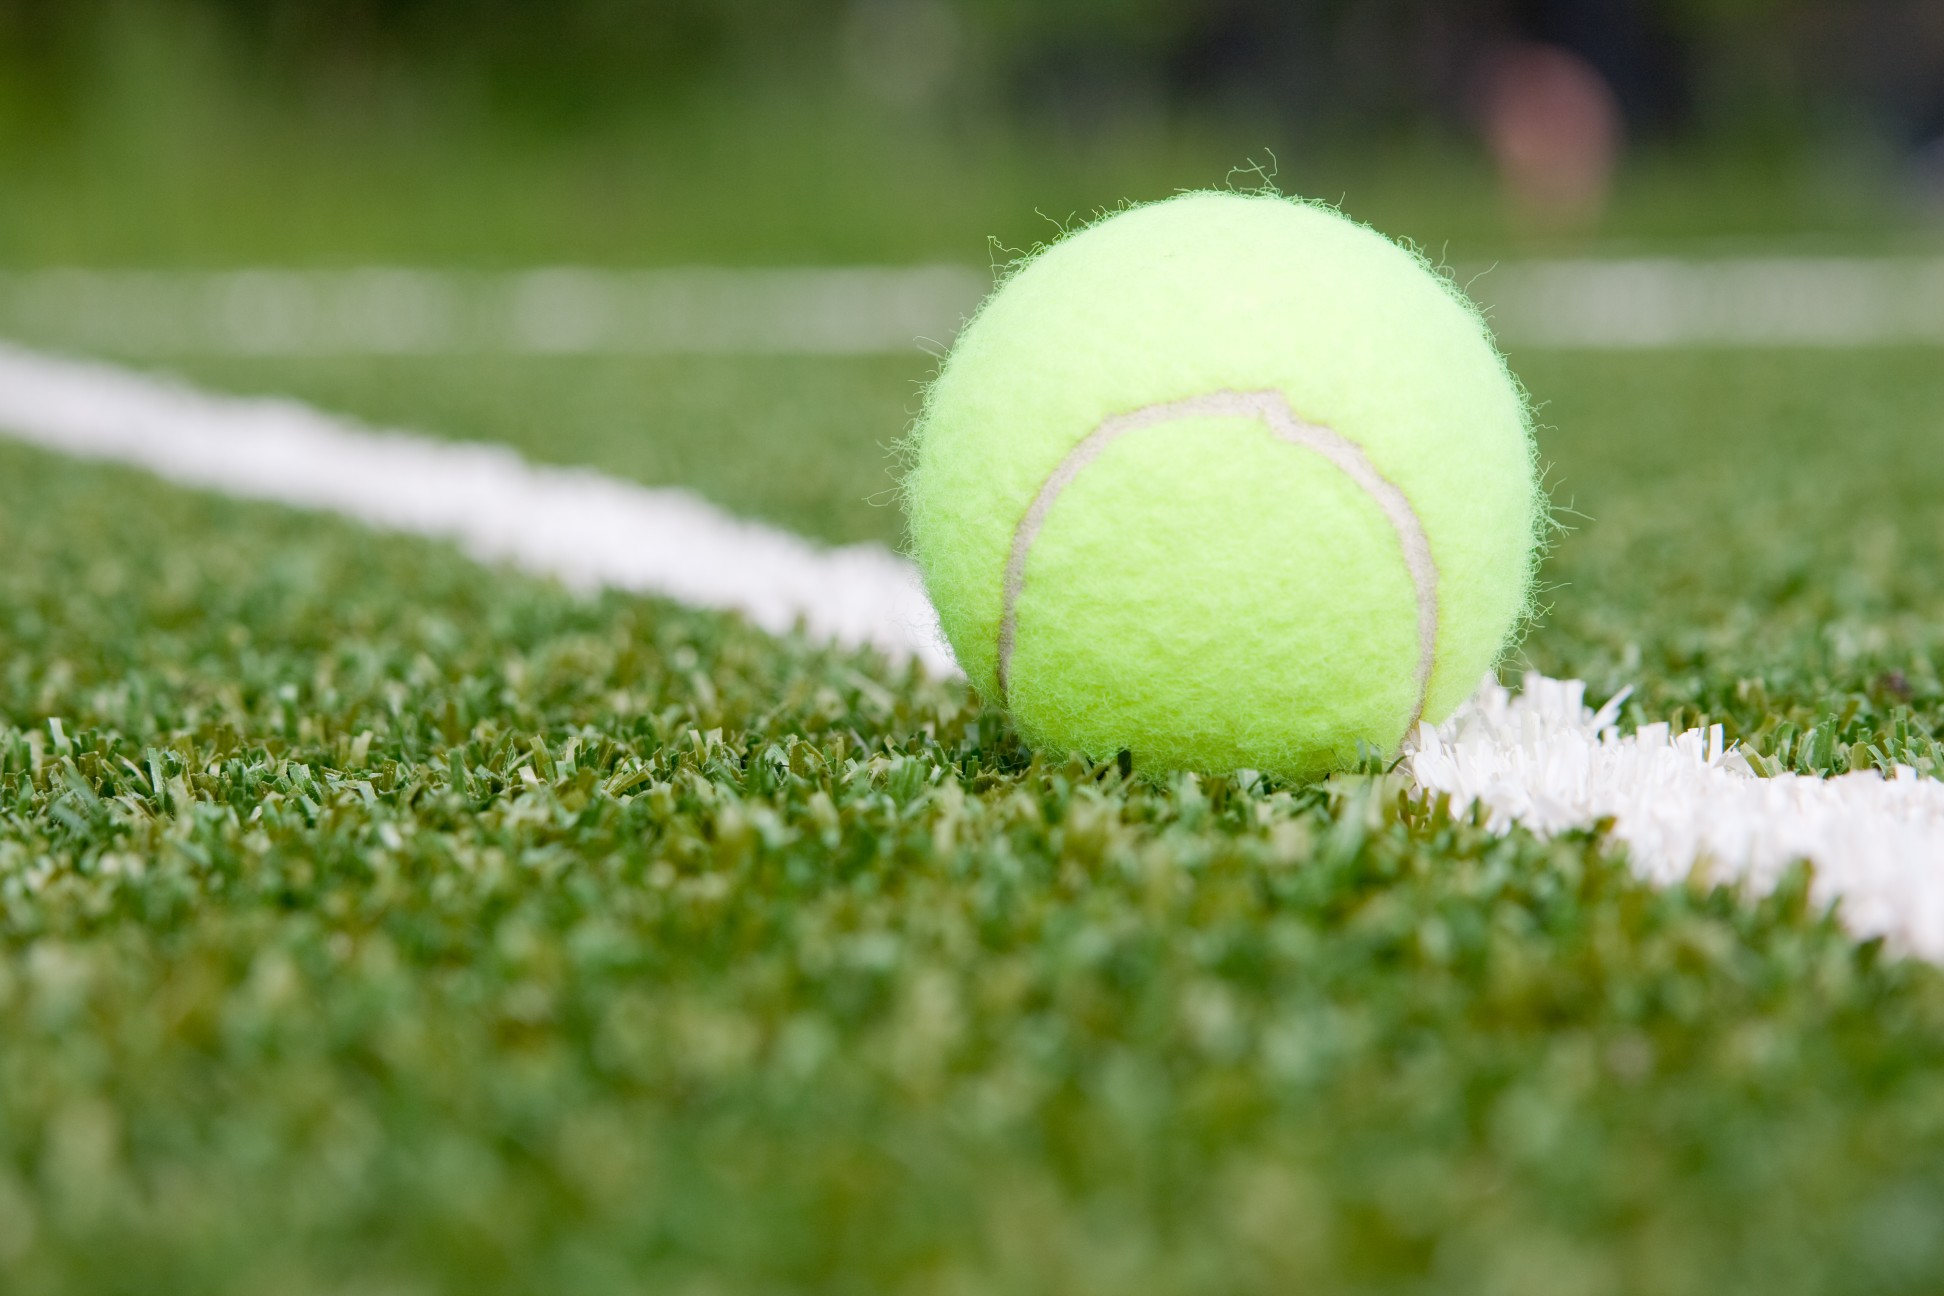 ETC Sports Surfaces are professional, accredited installers of UK synthetic tennis courts.